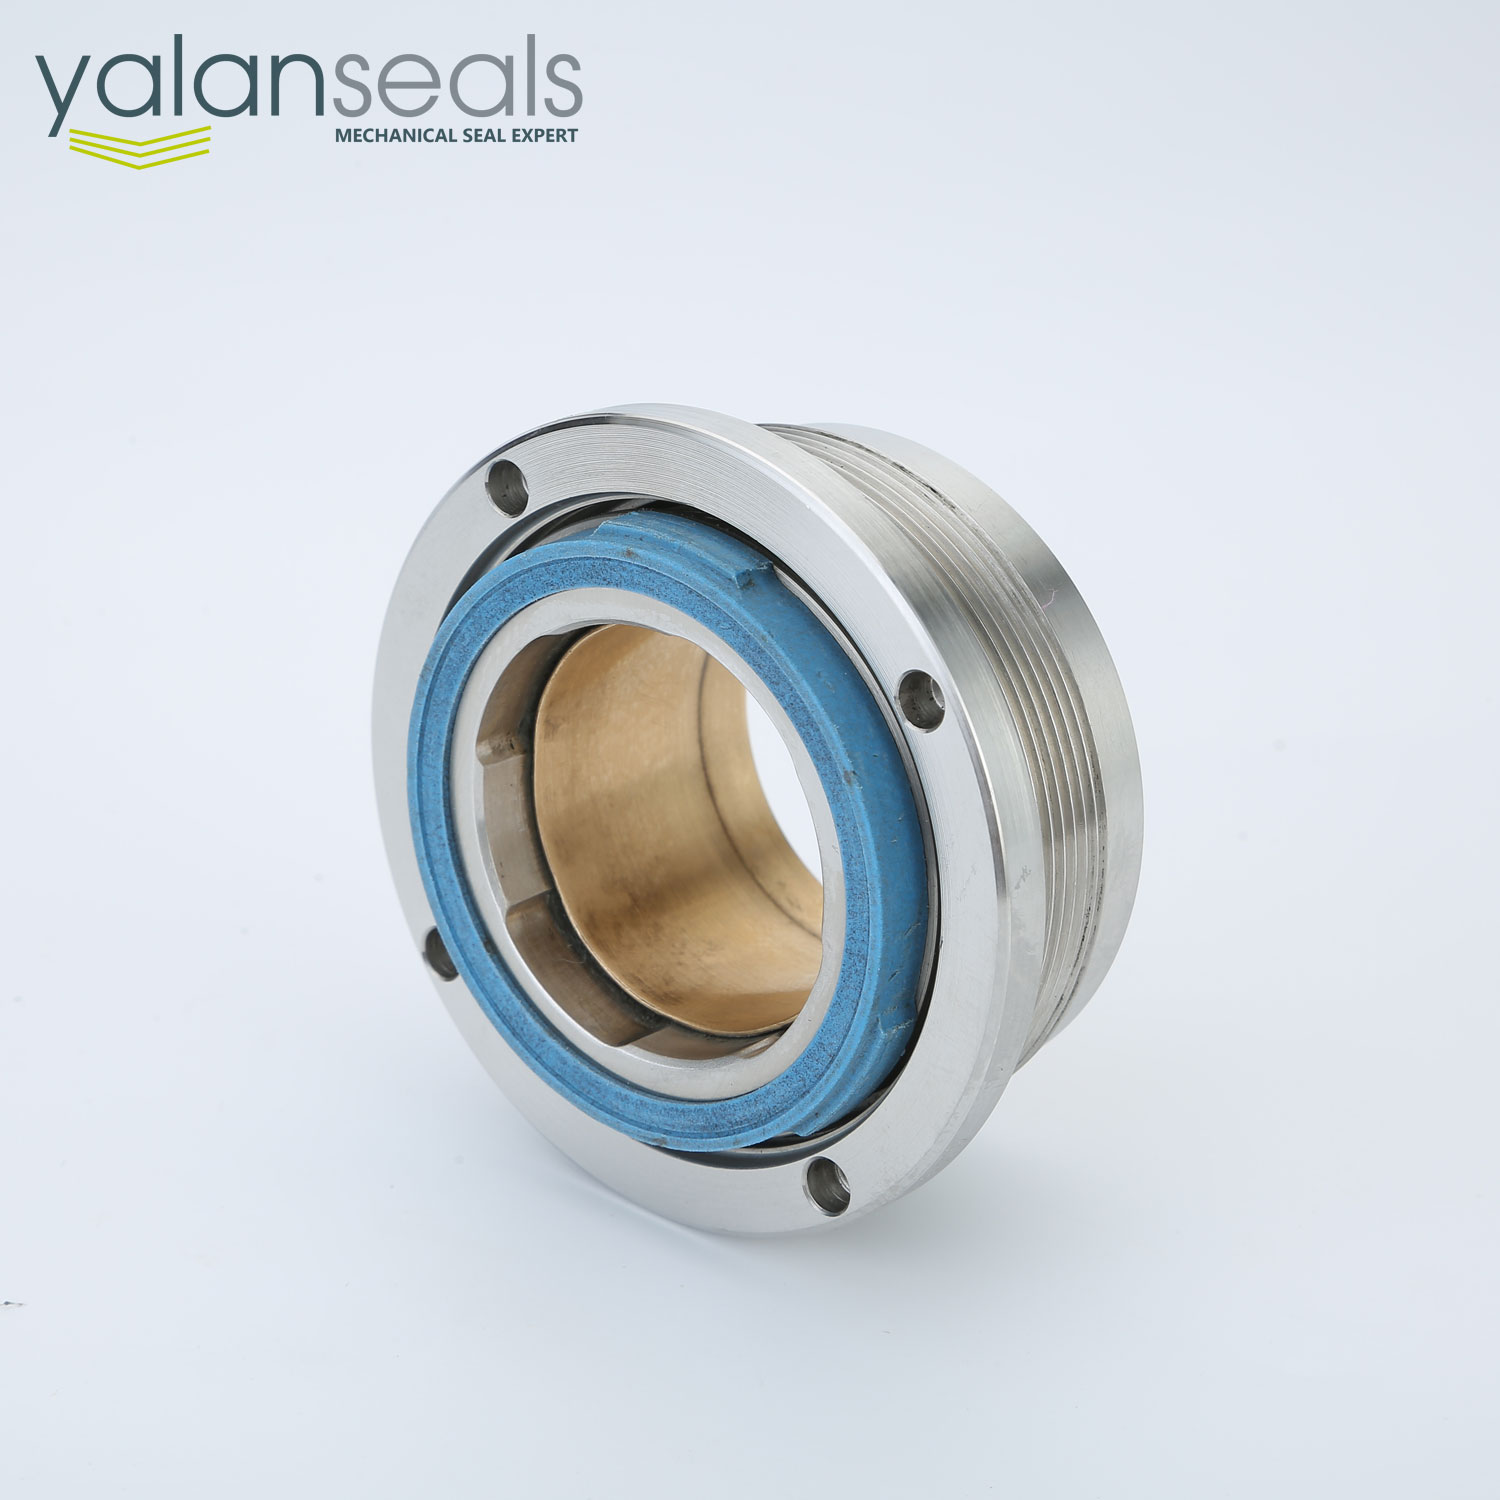 DWB1 Metal Bellow Mechanical Seal for Cryogenic Pumps